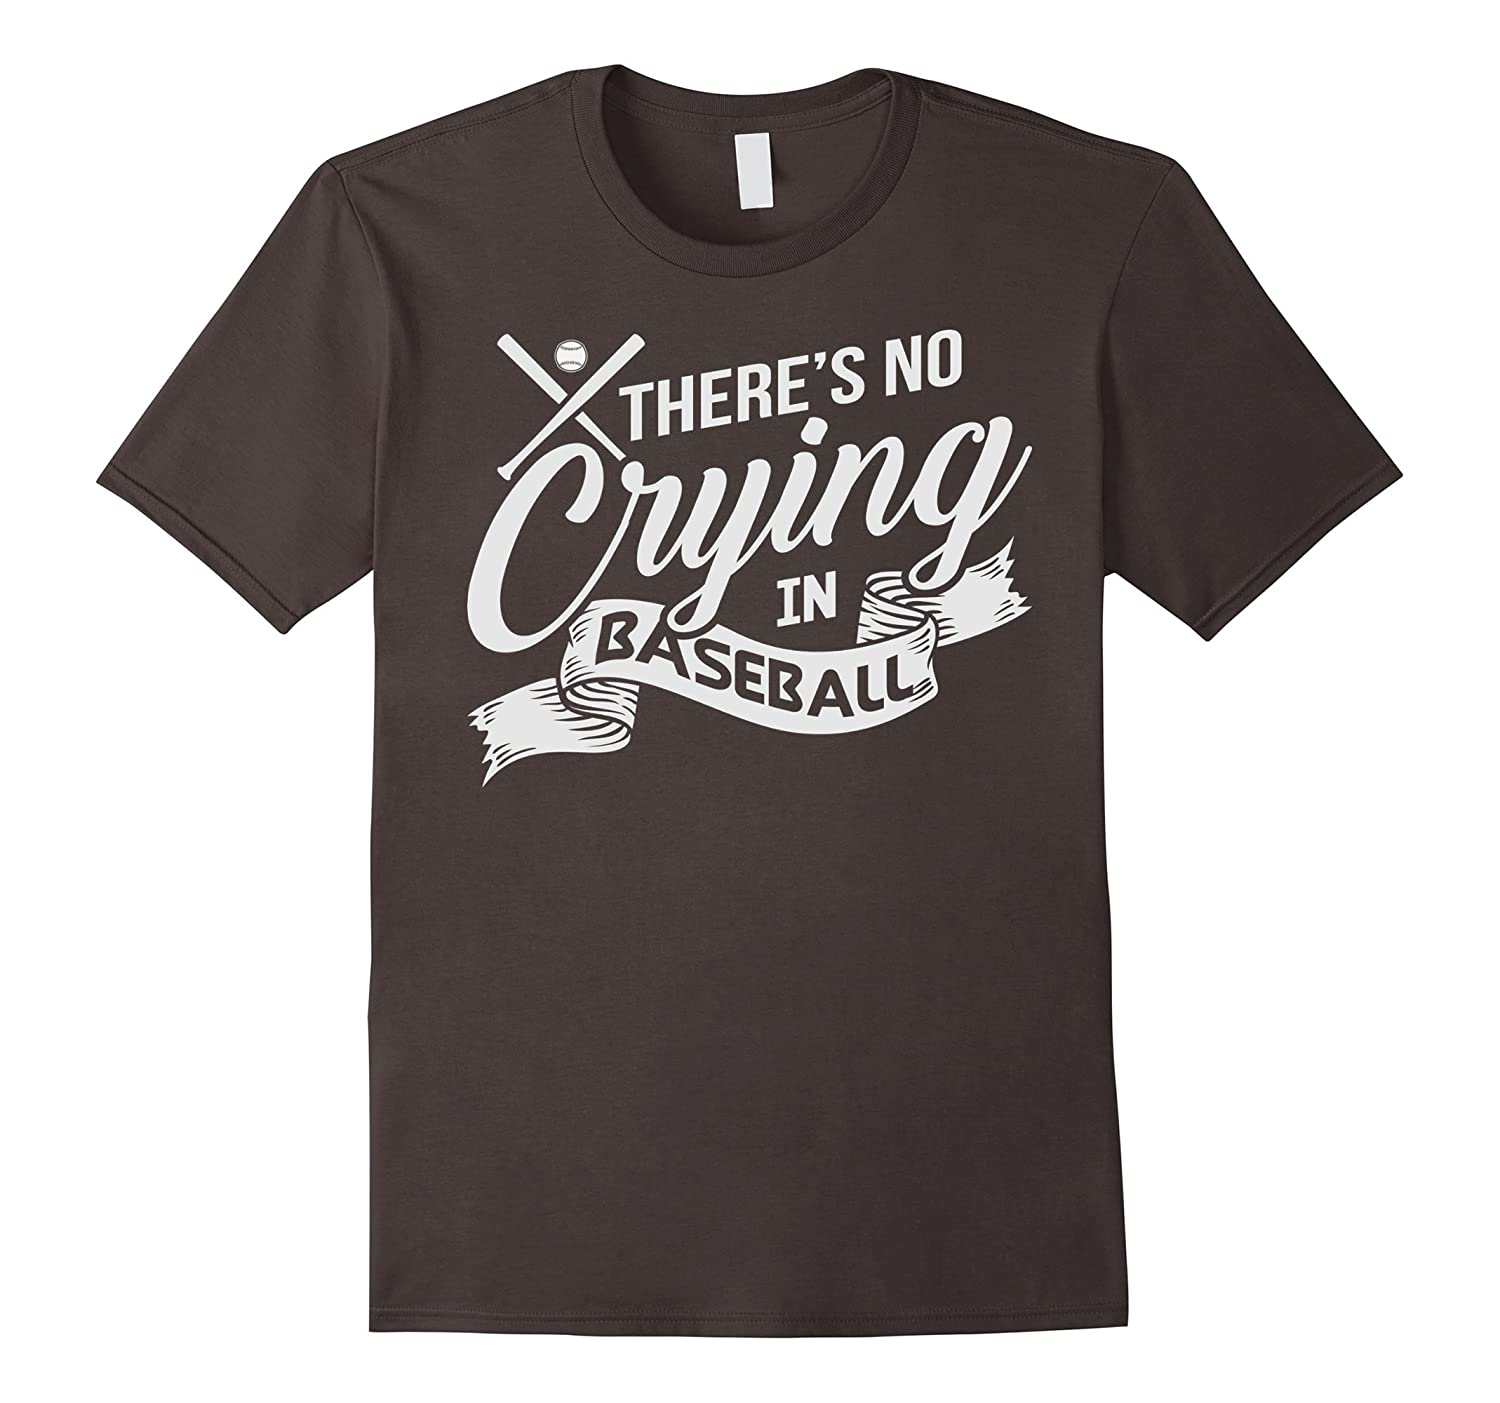 88b75daf4 Theres No Crying In Baseball T Shirt Sporty T Shirt-CD – Canditee